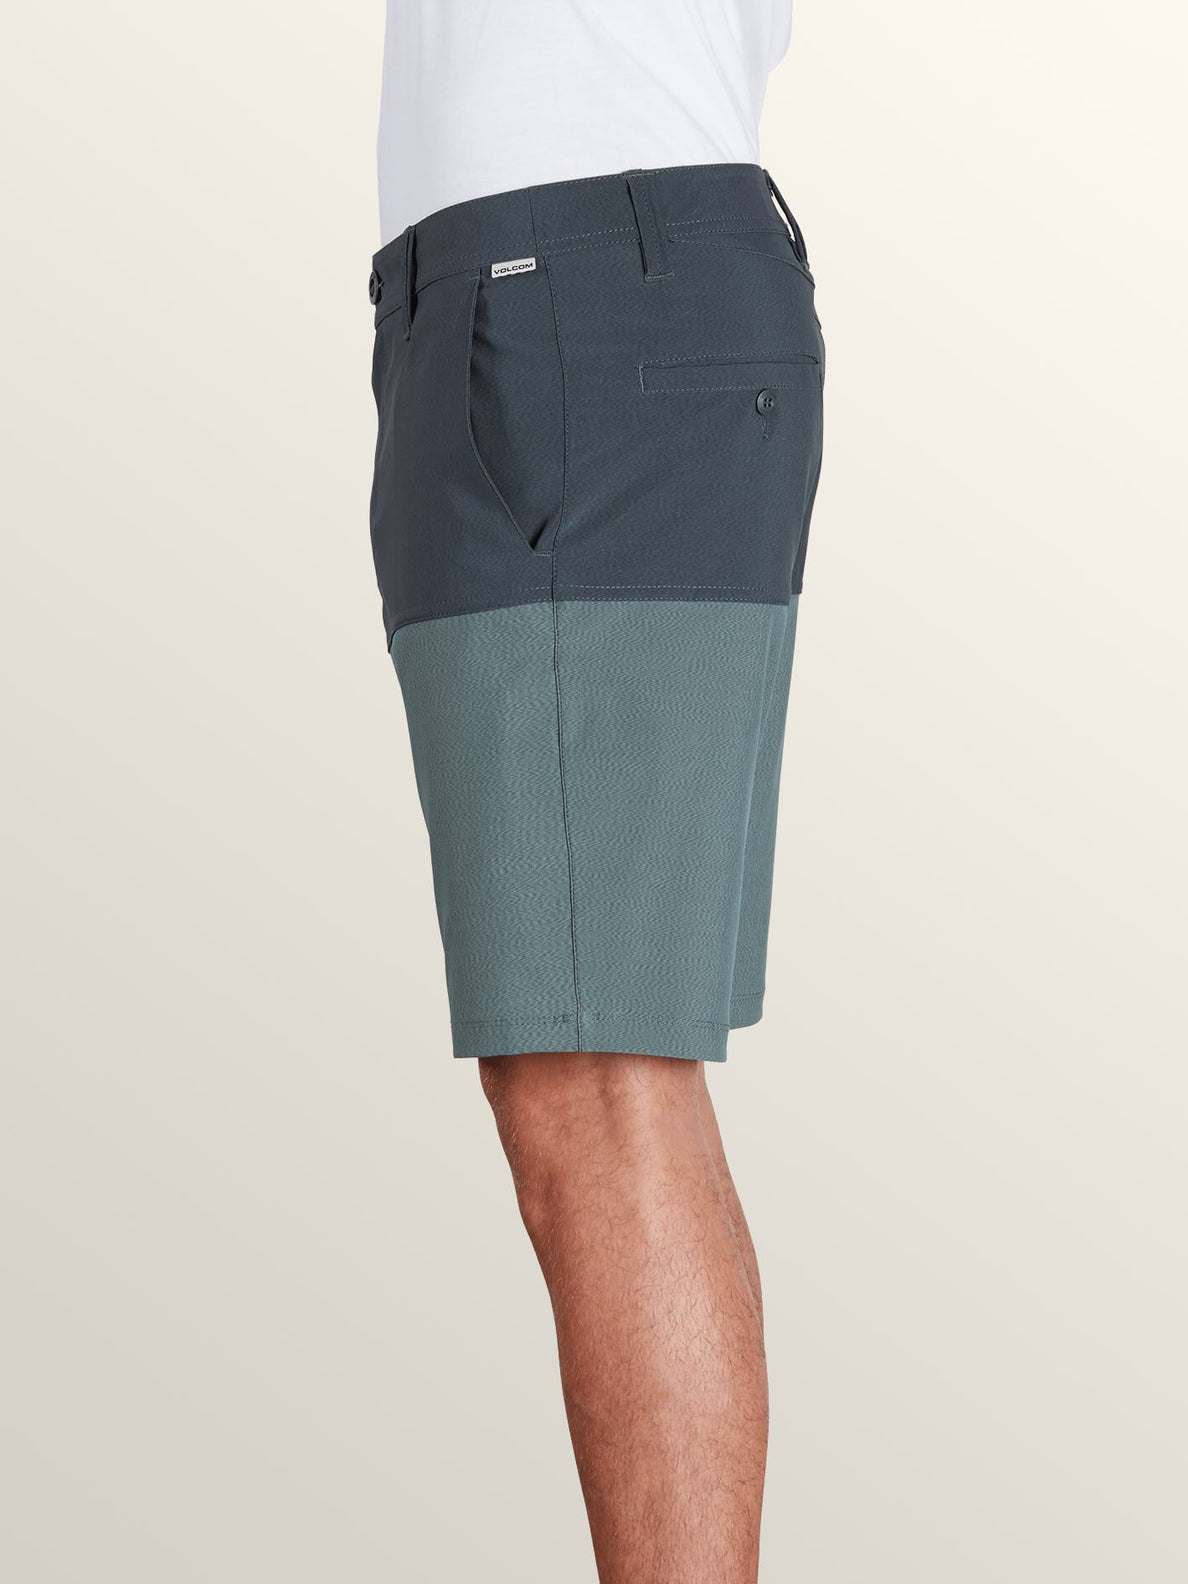 Surf 'N Turf Hybrid Block Hybrid Shorts In Lead, Back View